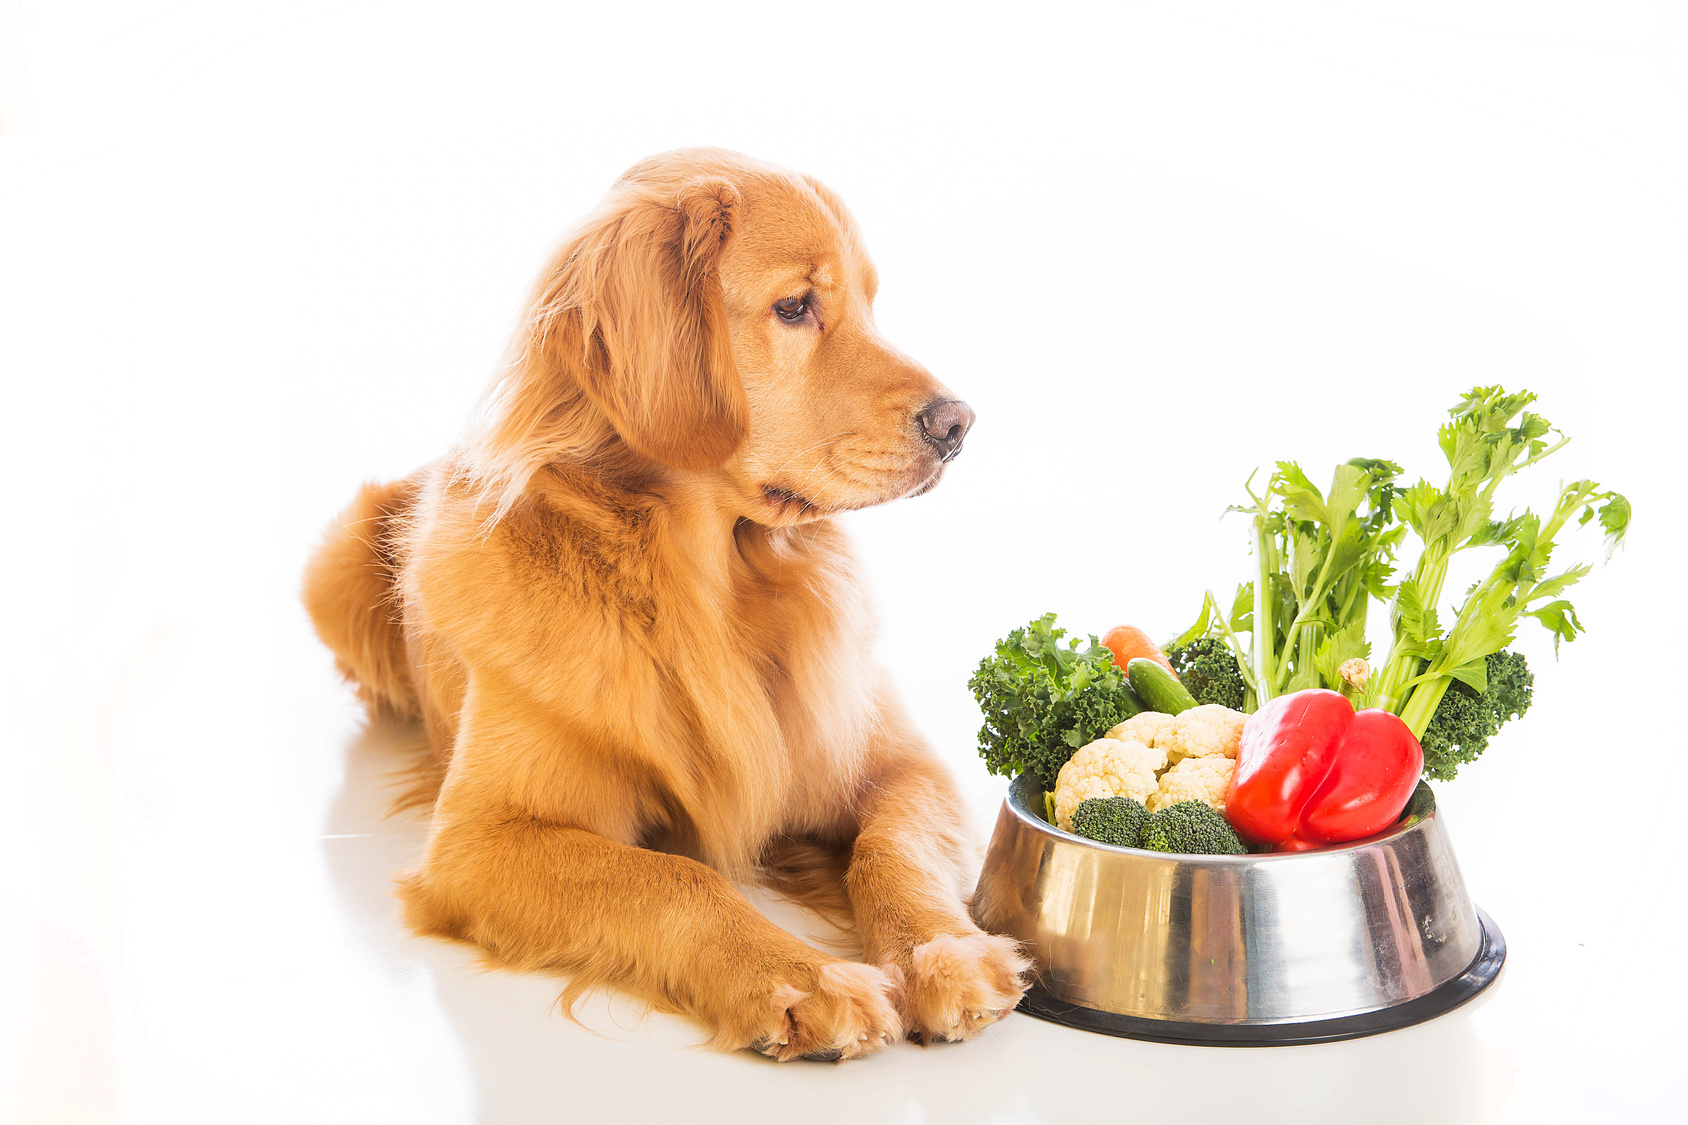 Can a dog be vegetarian